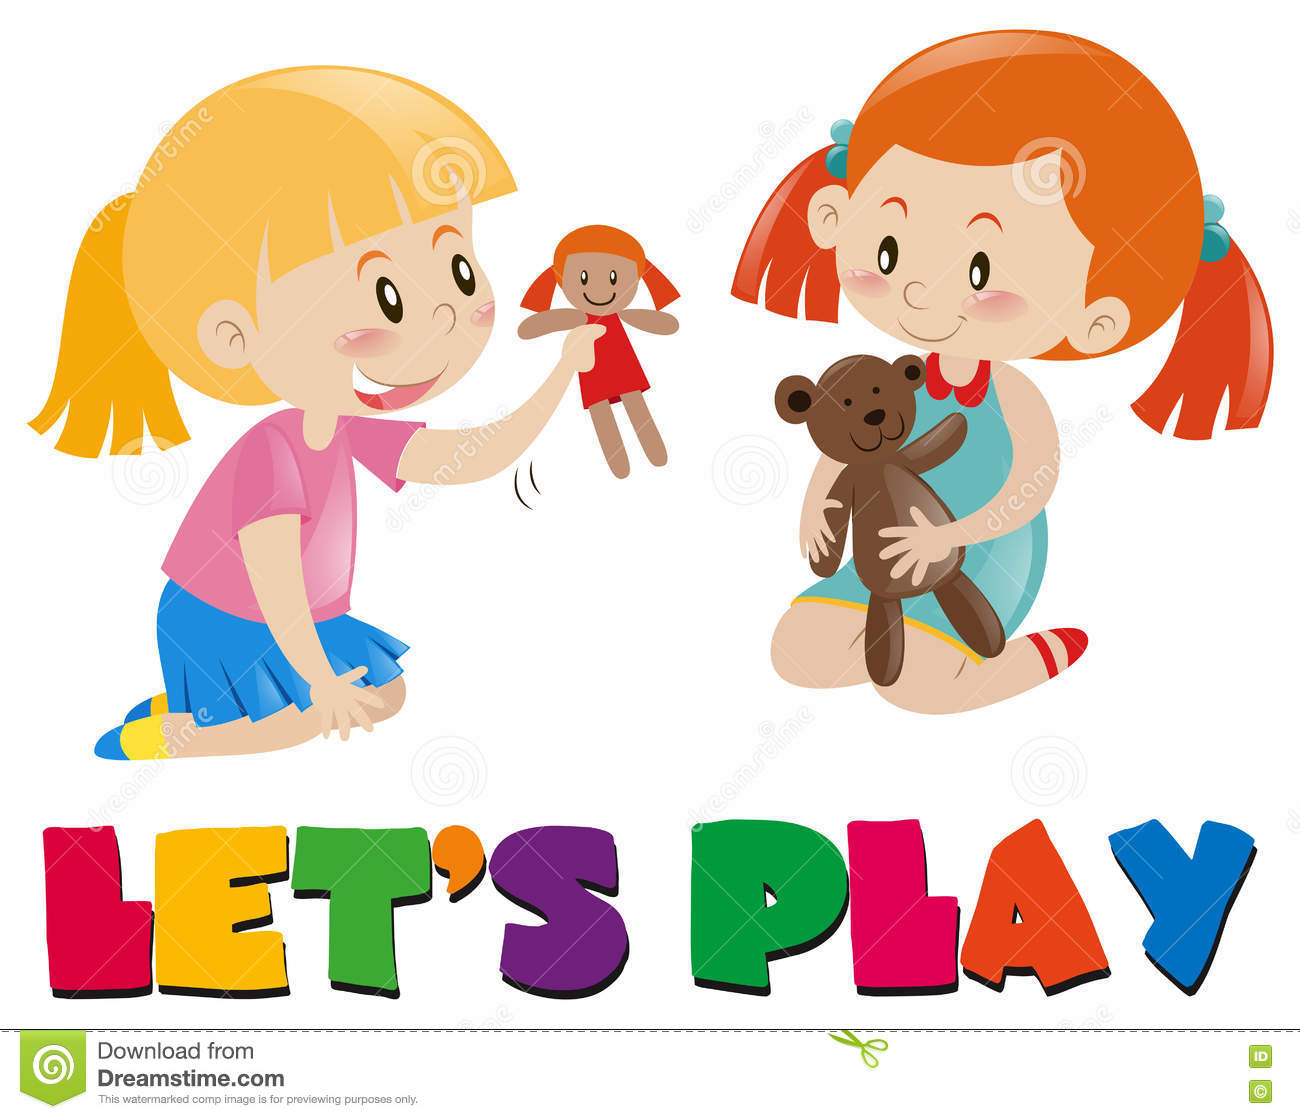 Two Girls Playing With Dolls Stock Vector - Image: 78348652 Playing With Dolls Clip Art